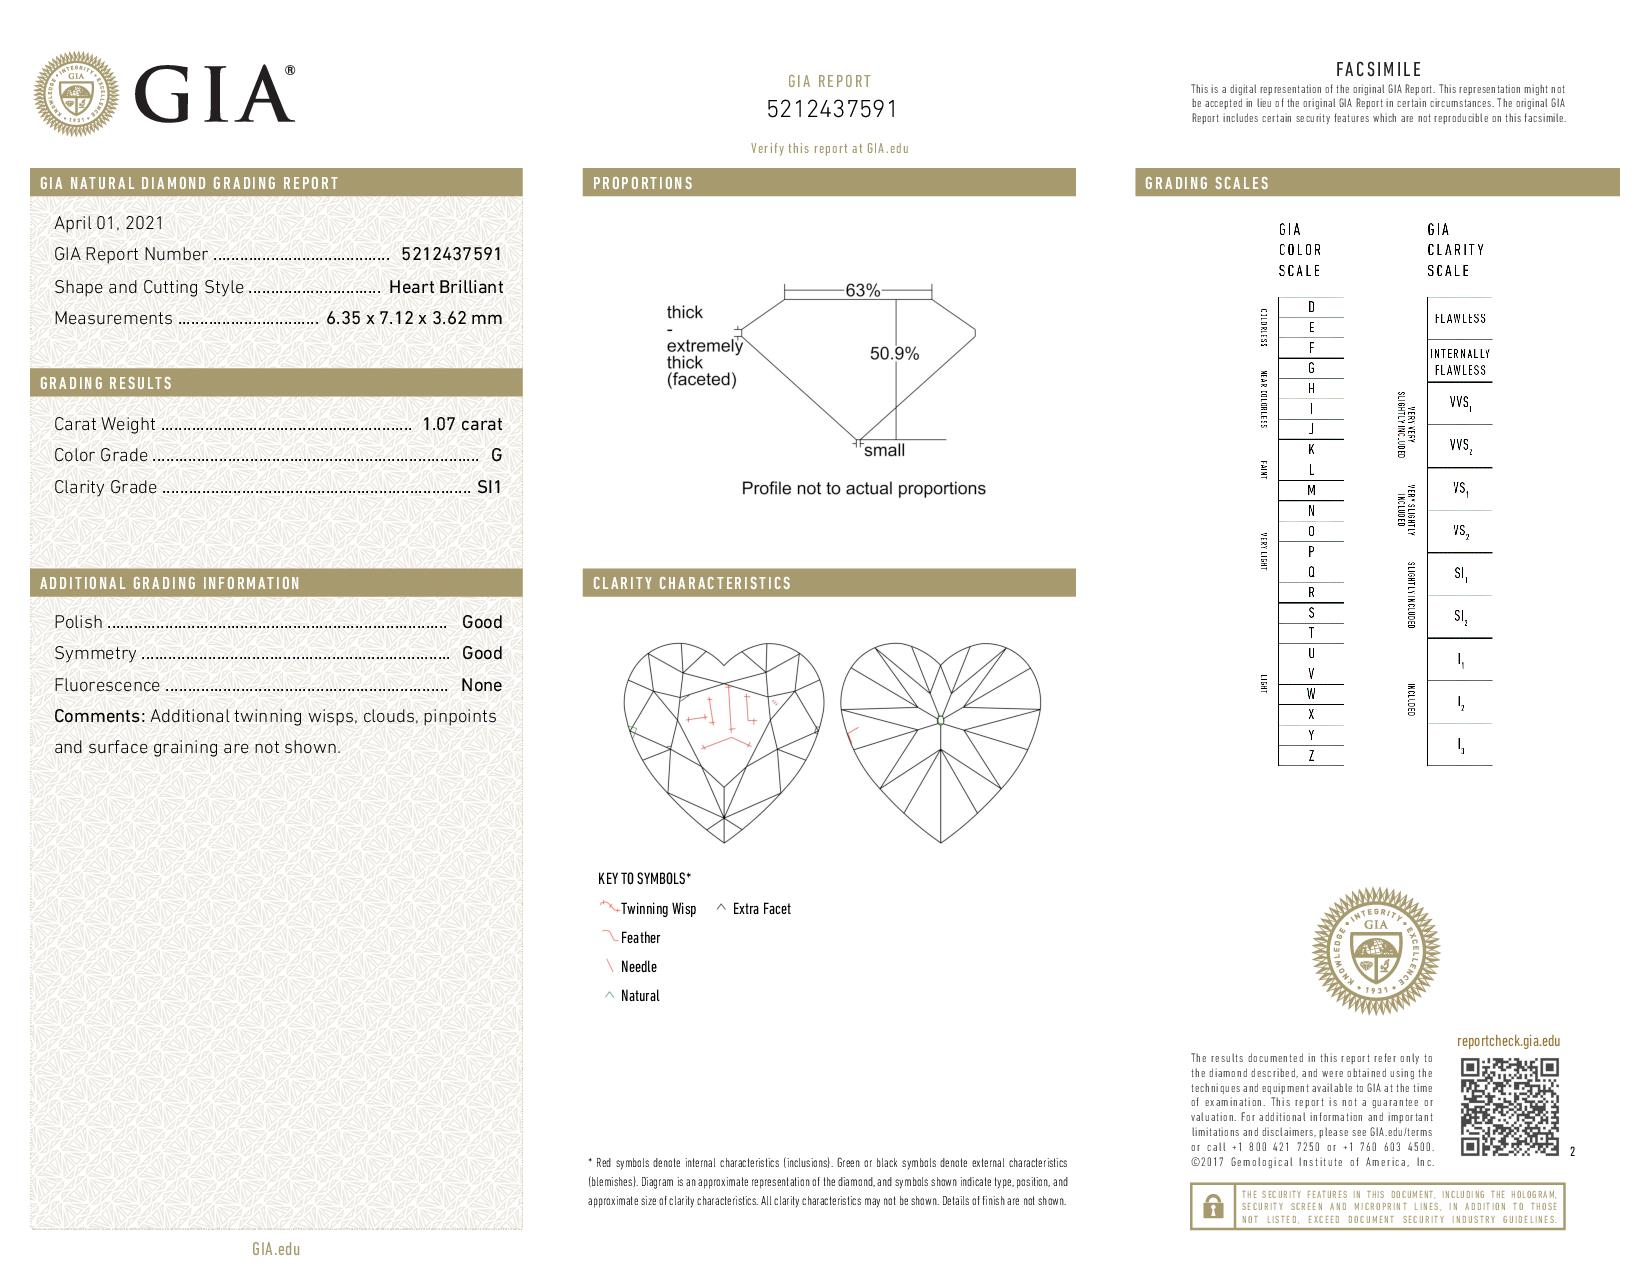 This is a 1.07 carat heart shape, G color, SI1 clarity natural diamond accompanied by a GIA grading report.